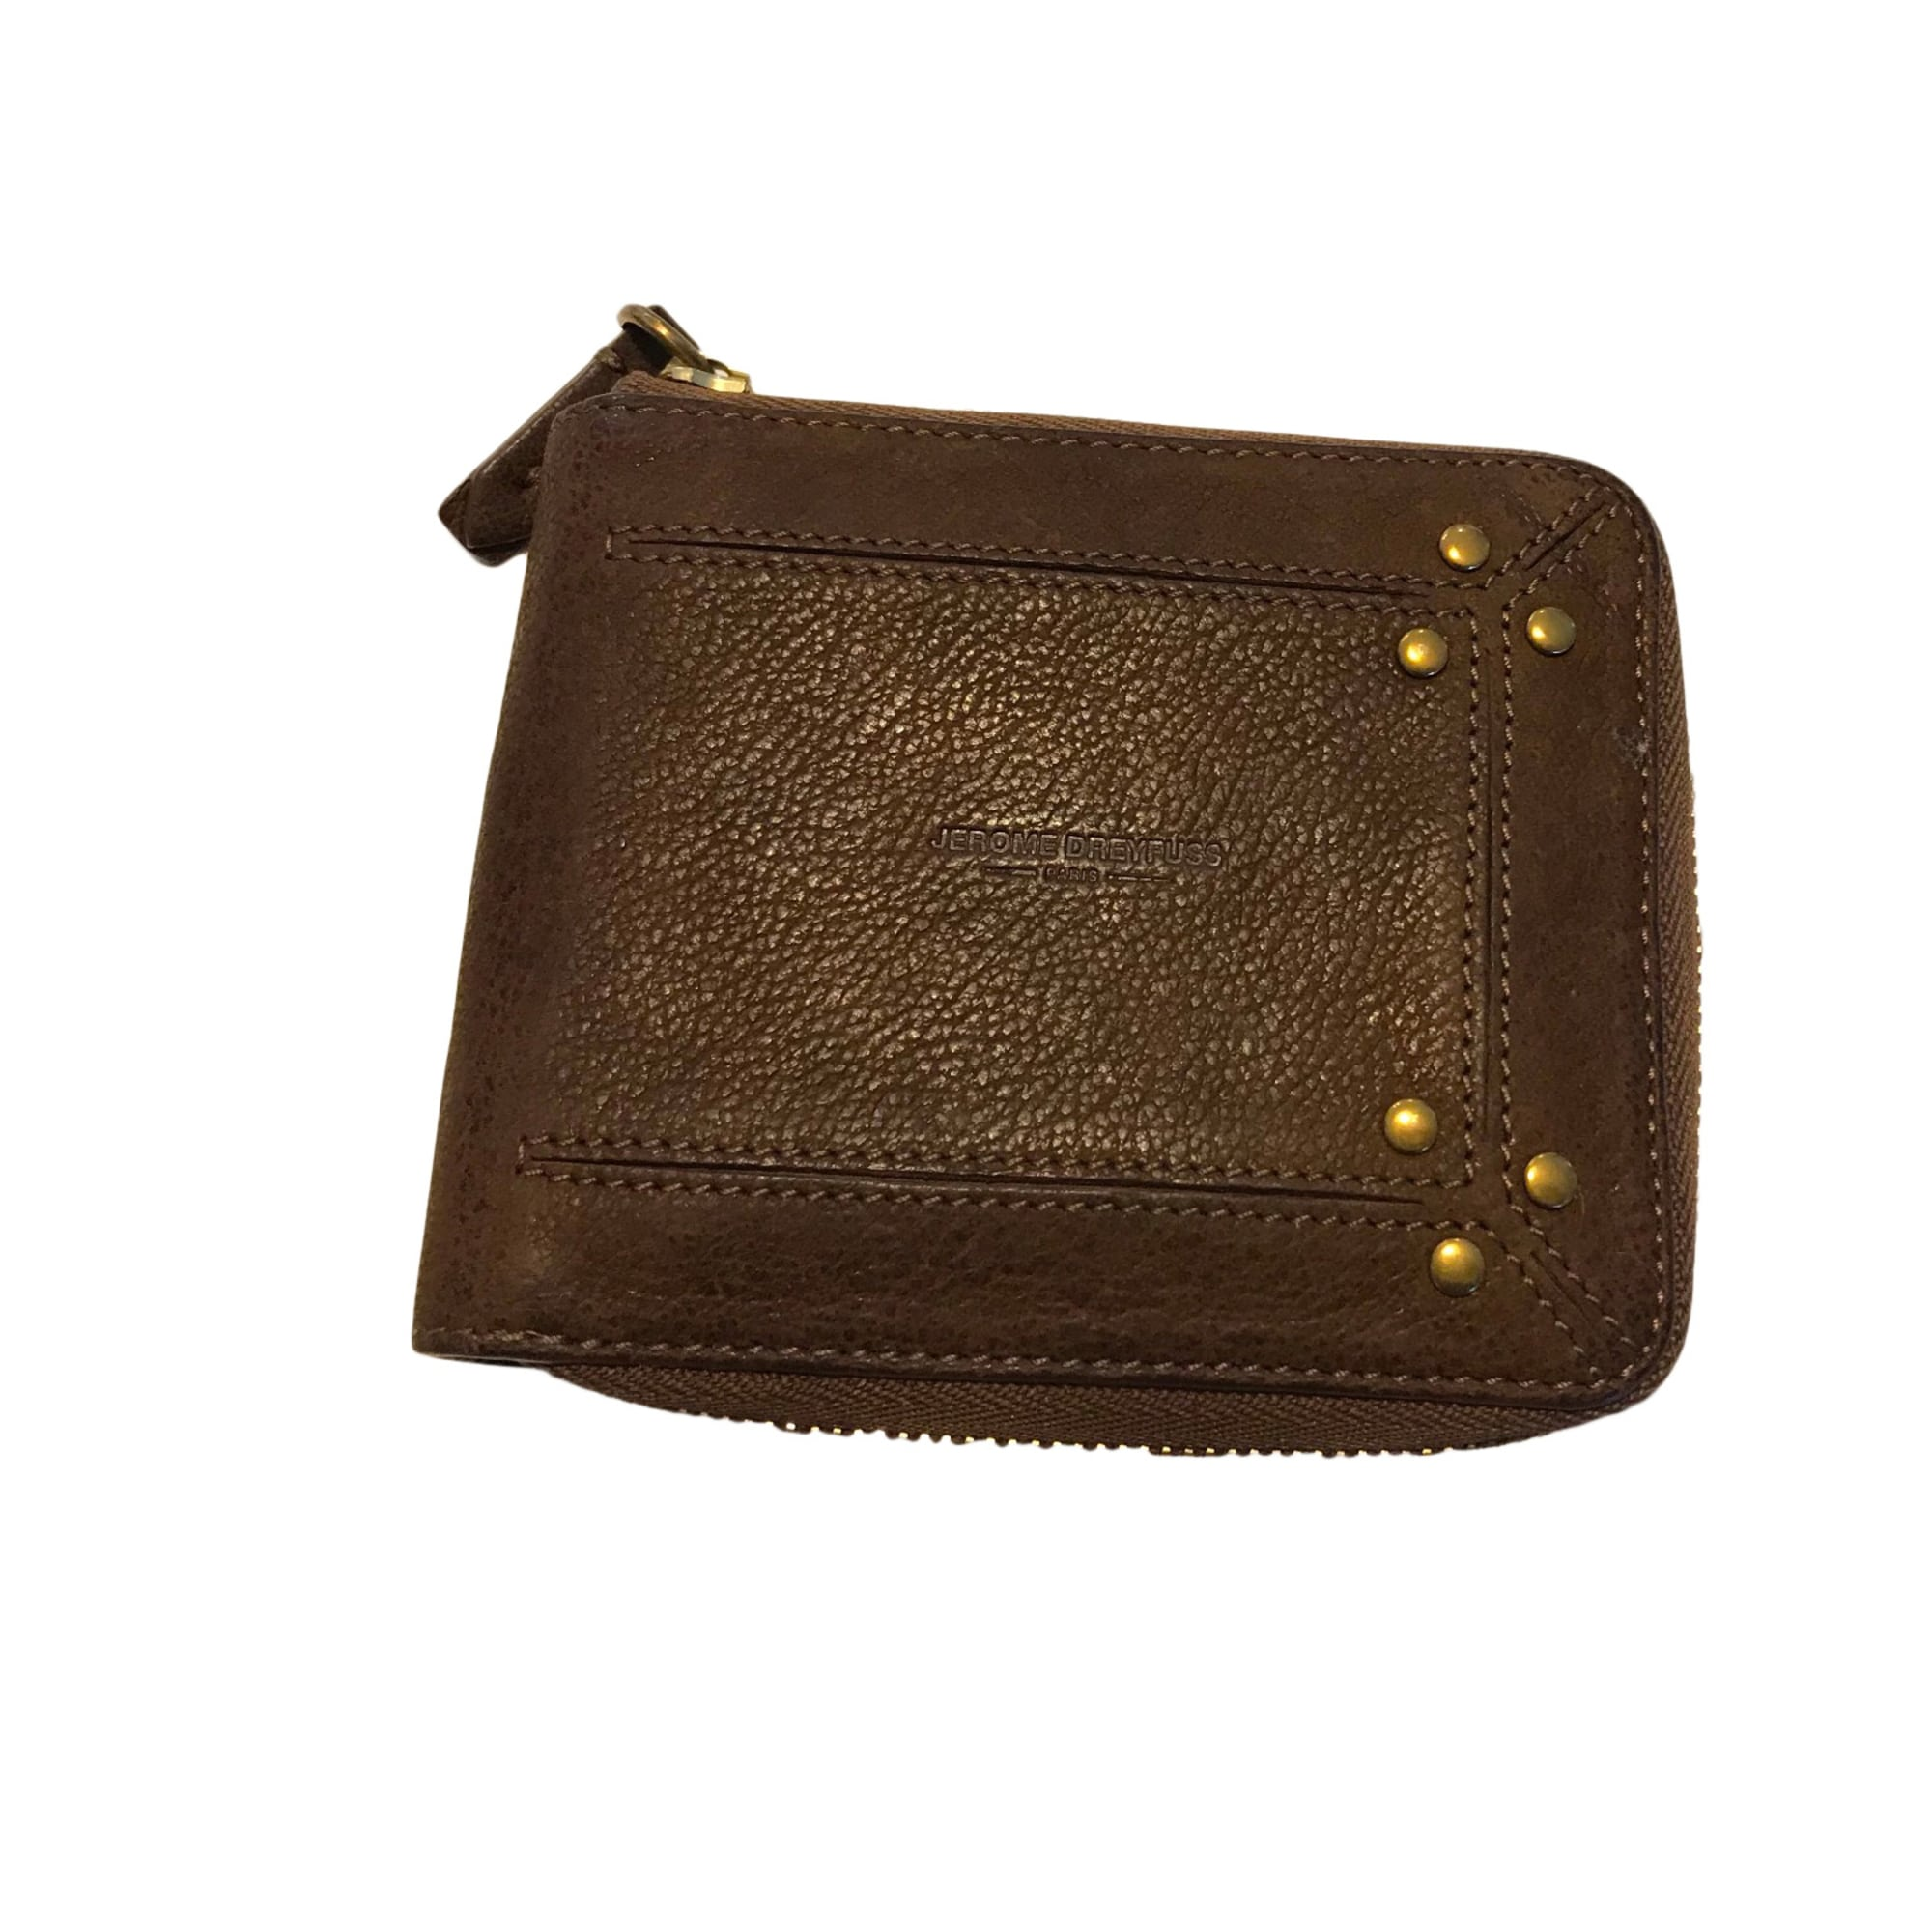 Coin Purse JEROME DREYFUSS Brown